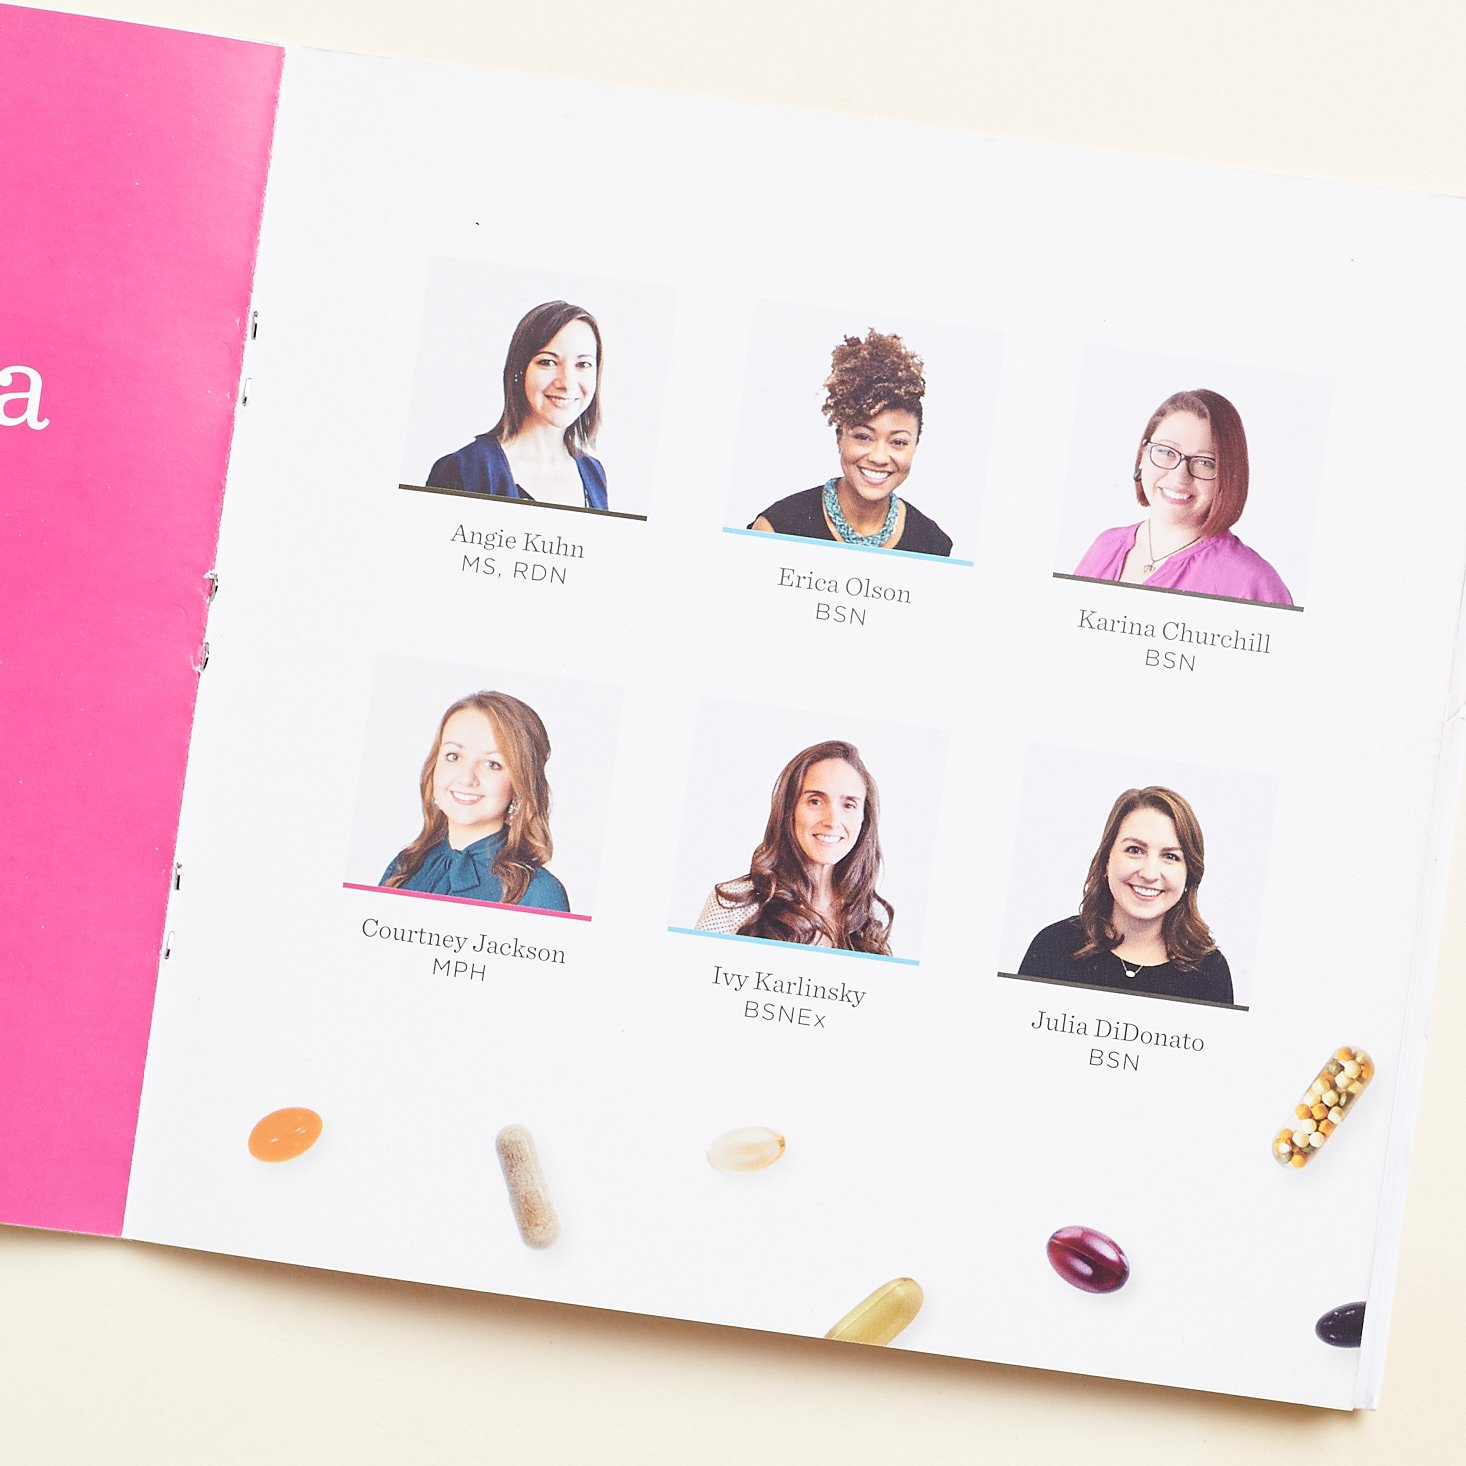 photoss and profiles for 6 nutritionists